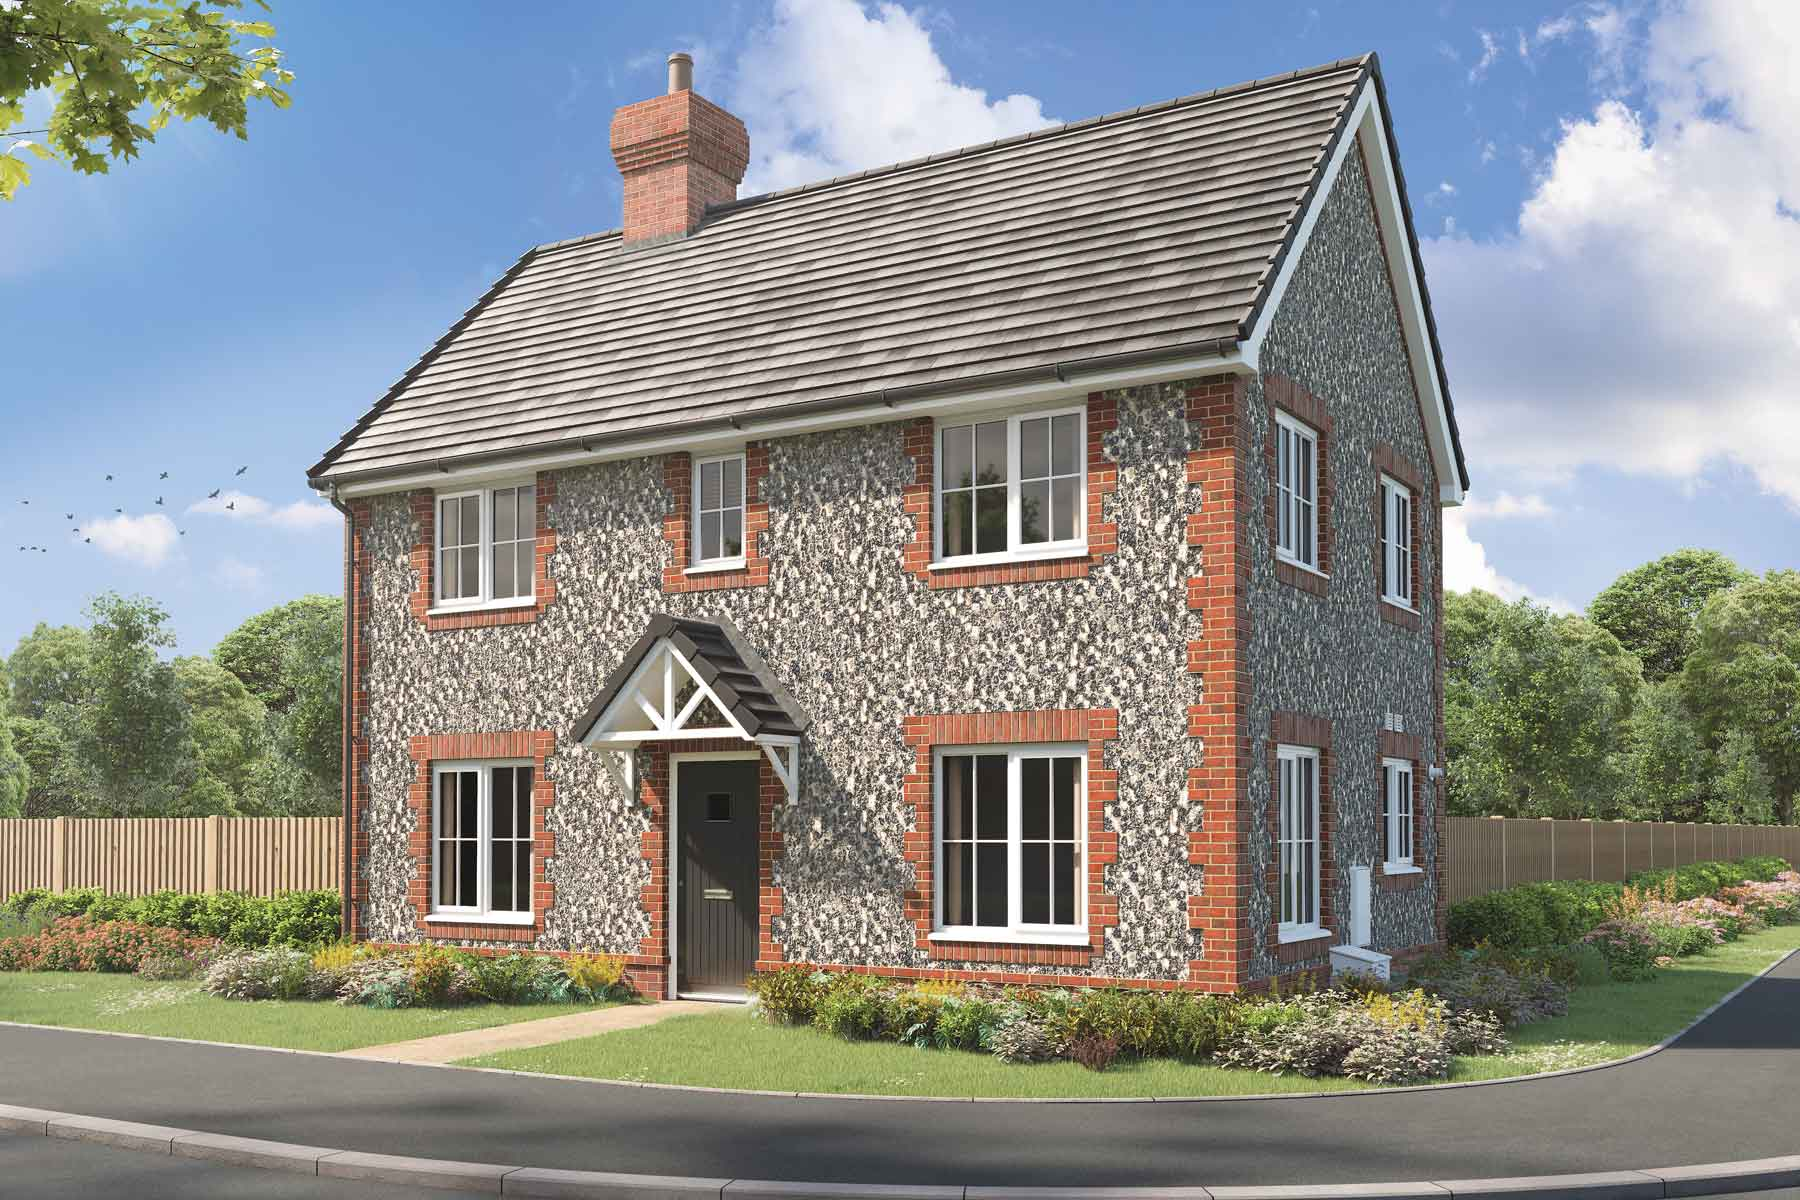 Artist's impression of a typical Easedale home